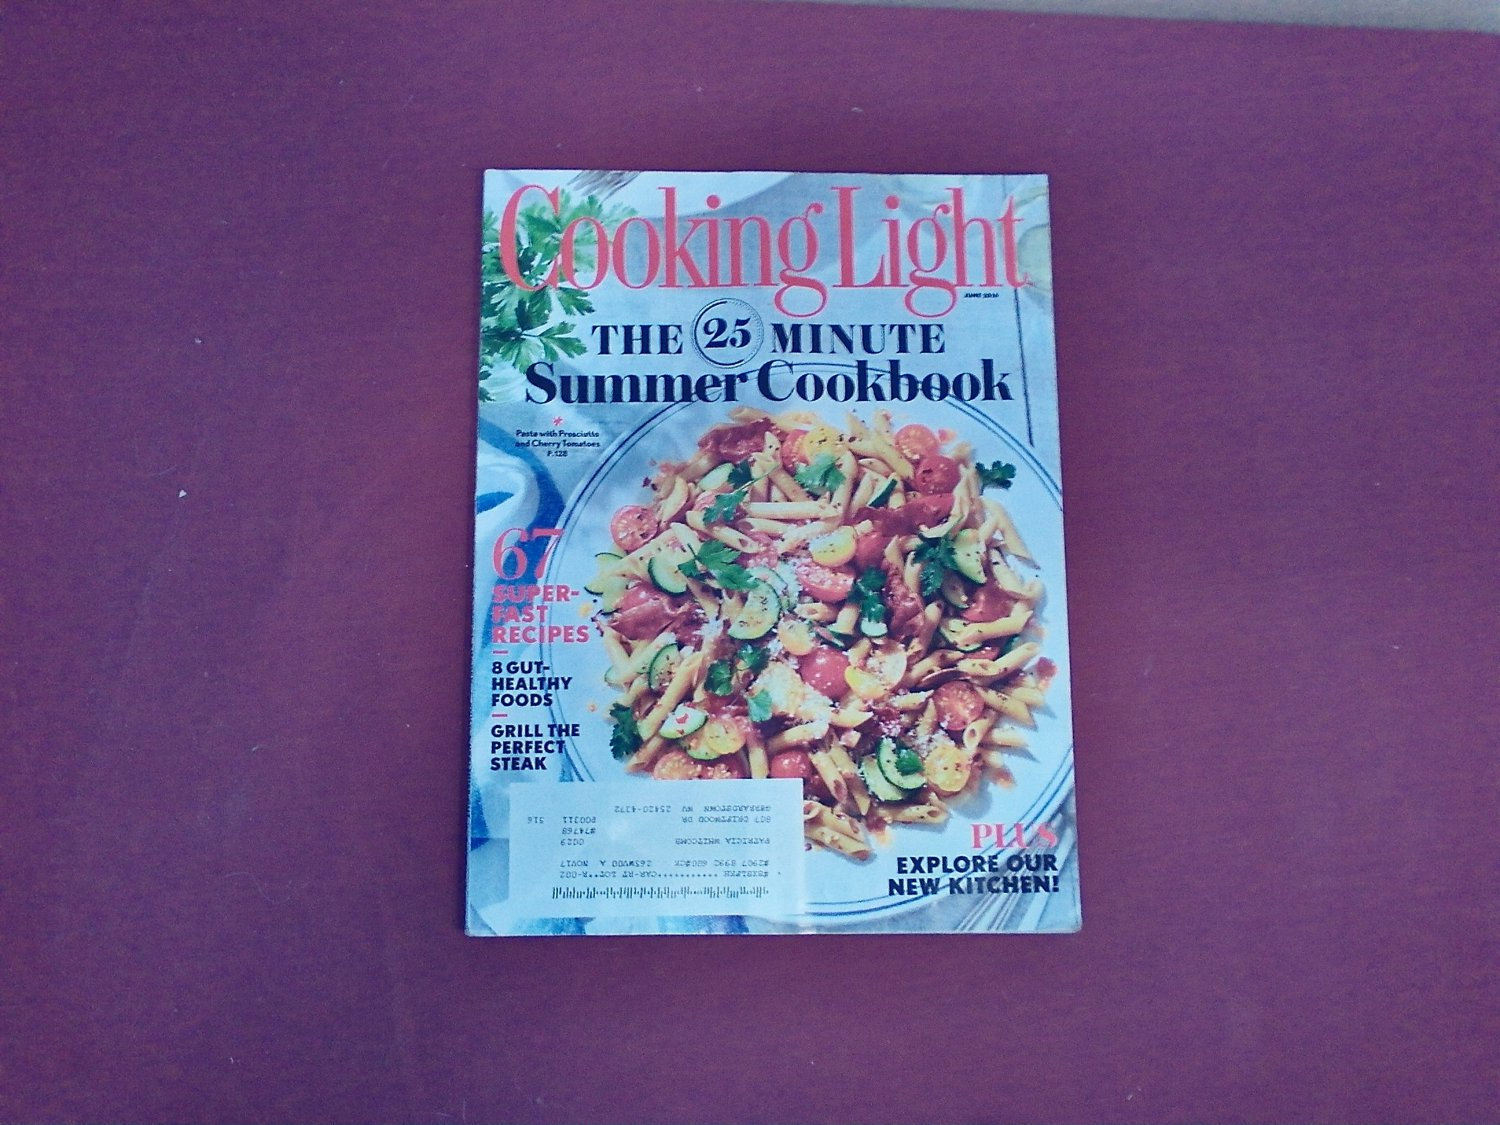 Cooking Light June 2016 Vol. 30 No. 5 - The 25 Minute Summer Cookbook